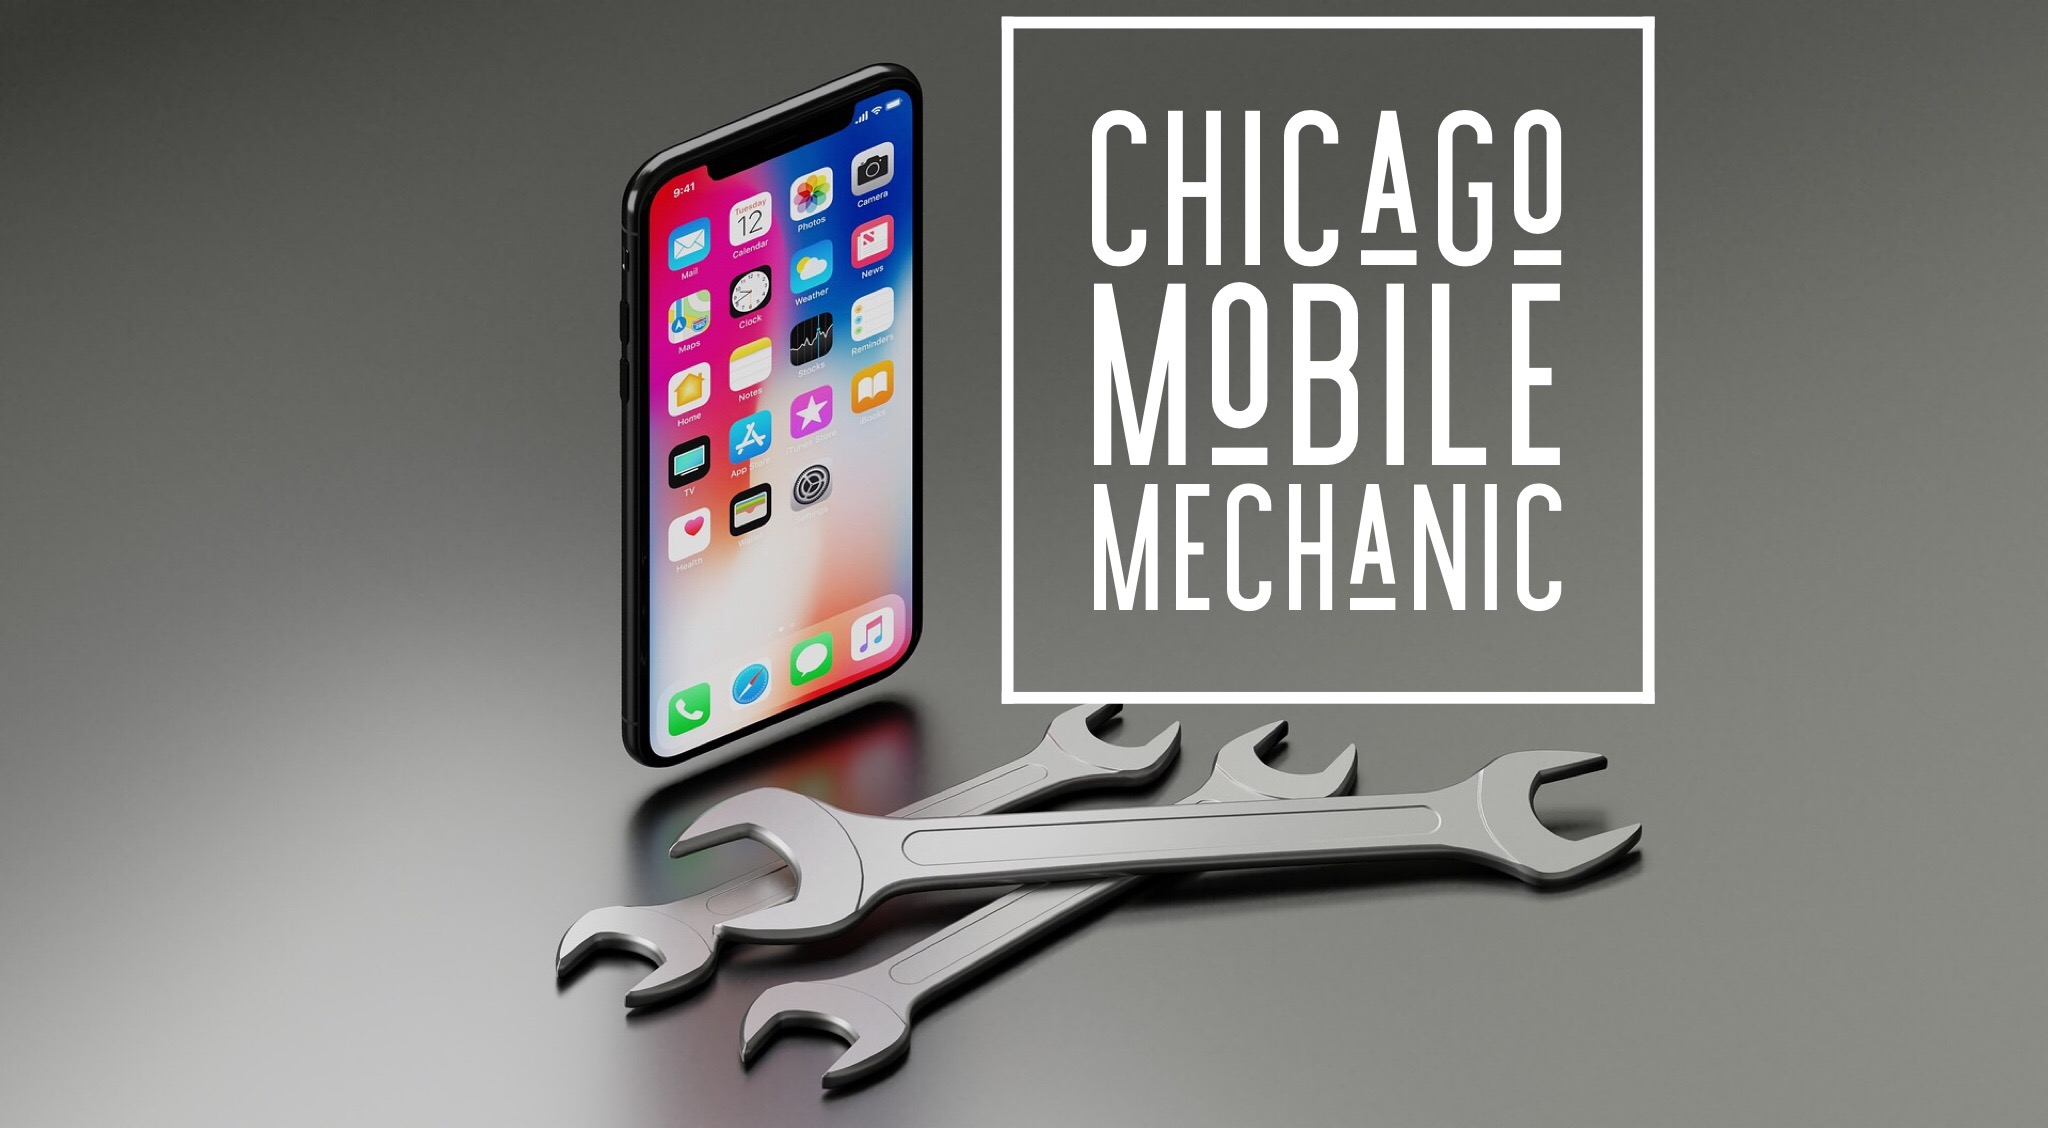 Chicago Mobile Mechanic